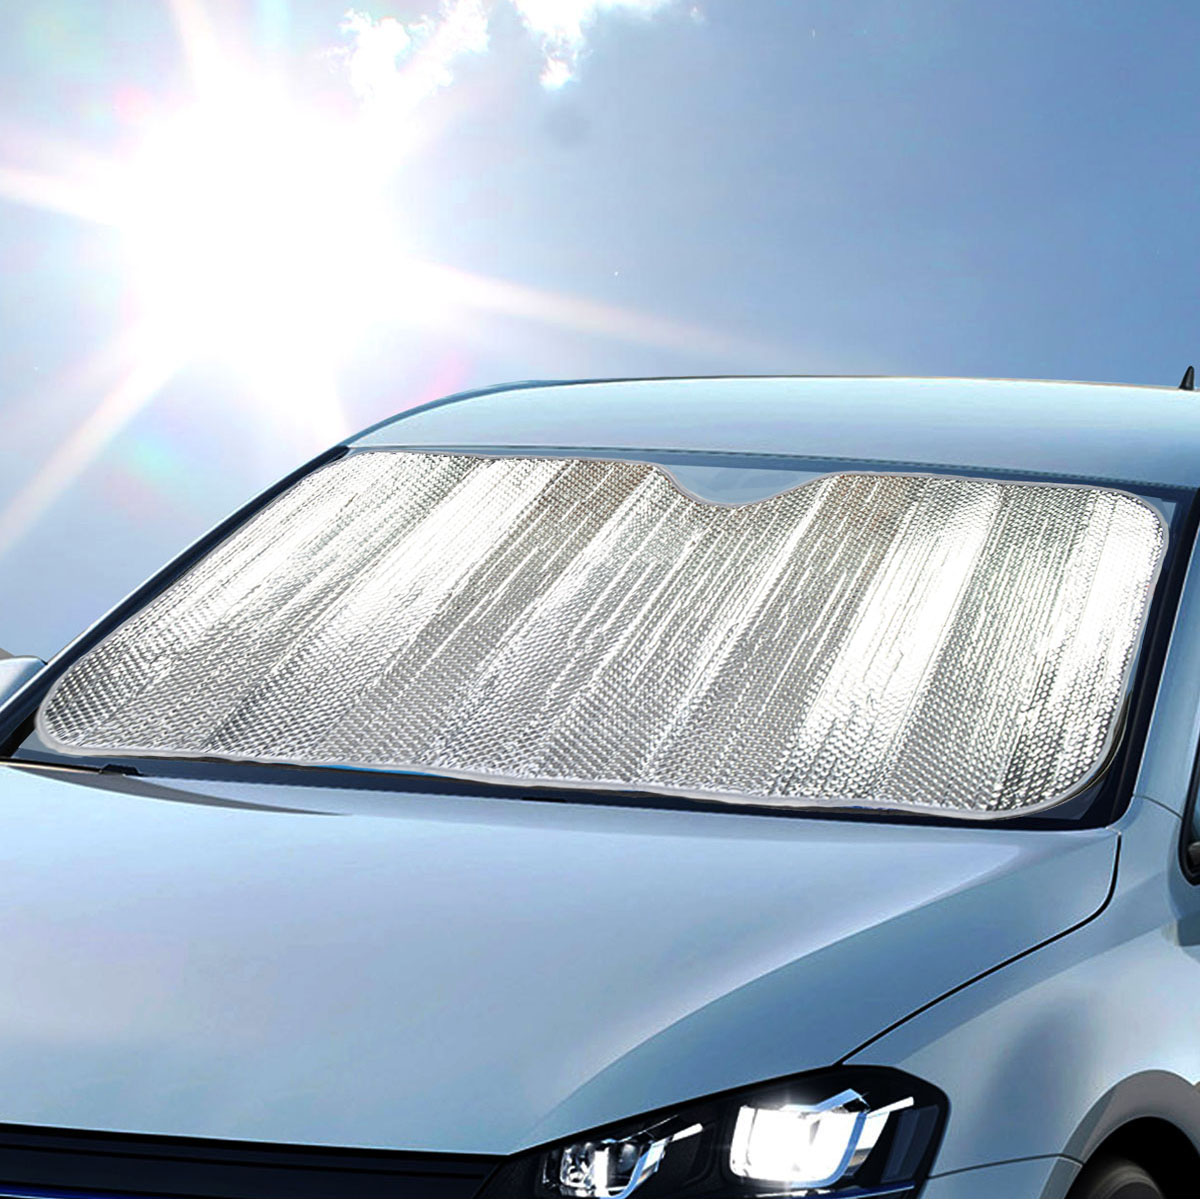 Details about Auto Sunshade Chrome Foil Reflective Sun Shade for Car Cover  Visor Standard Size eb84e358eee